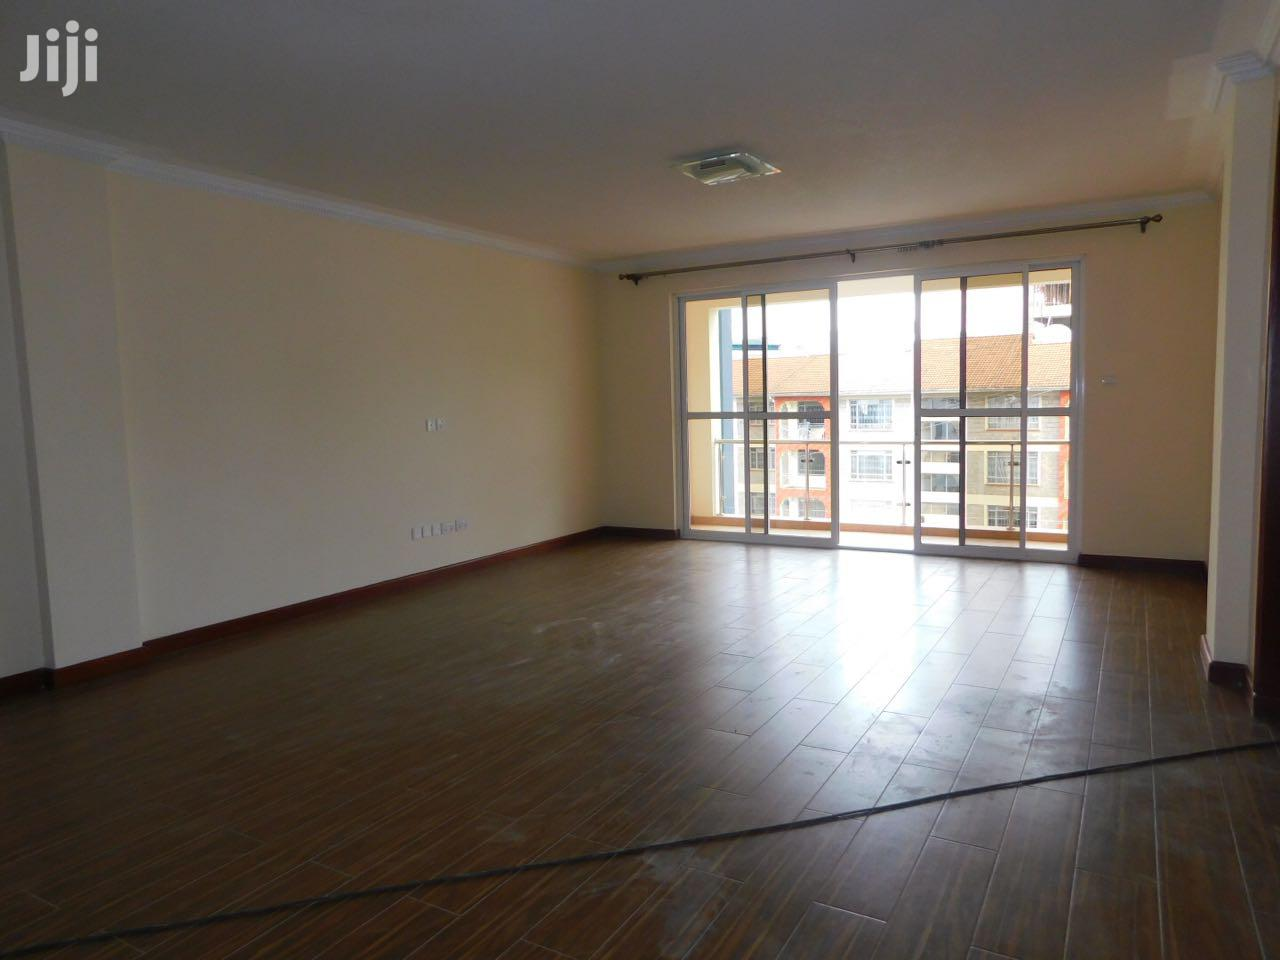 Archive: 3-Bedroom All en Suite Apartment to Let in Riverside Drive